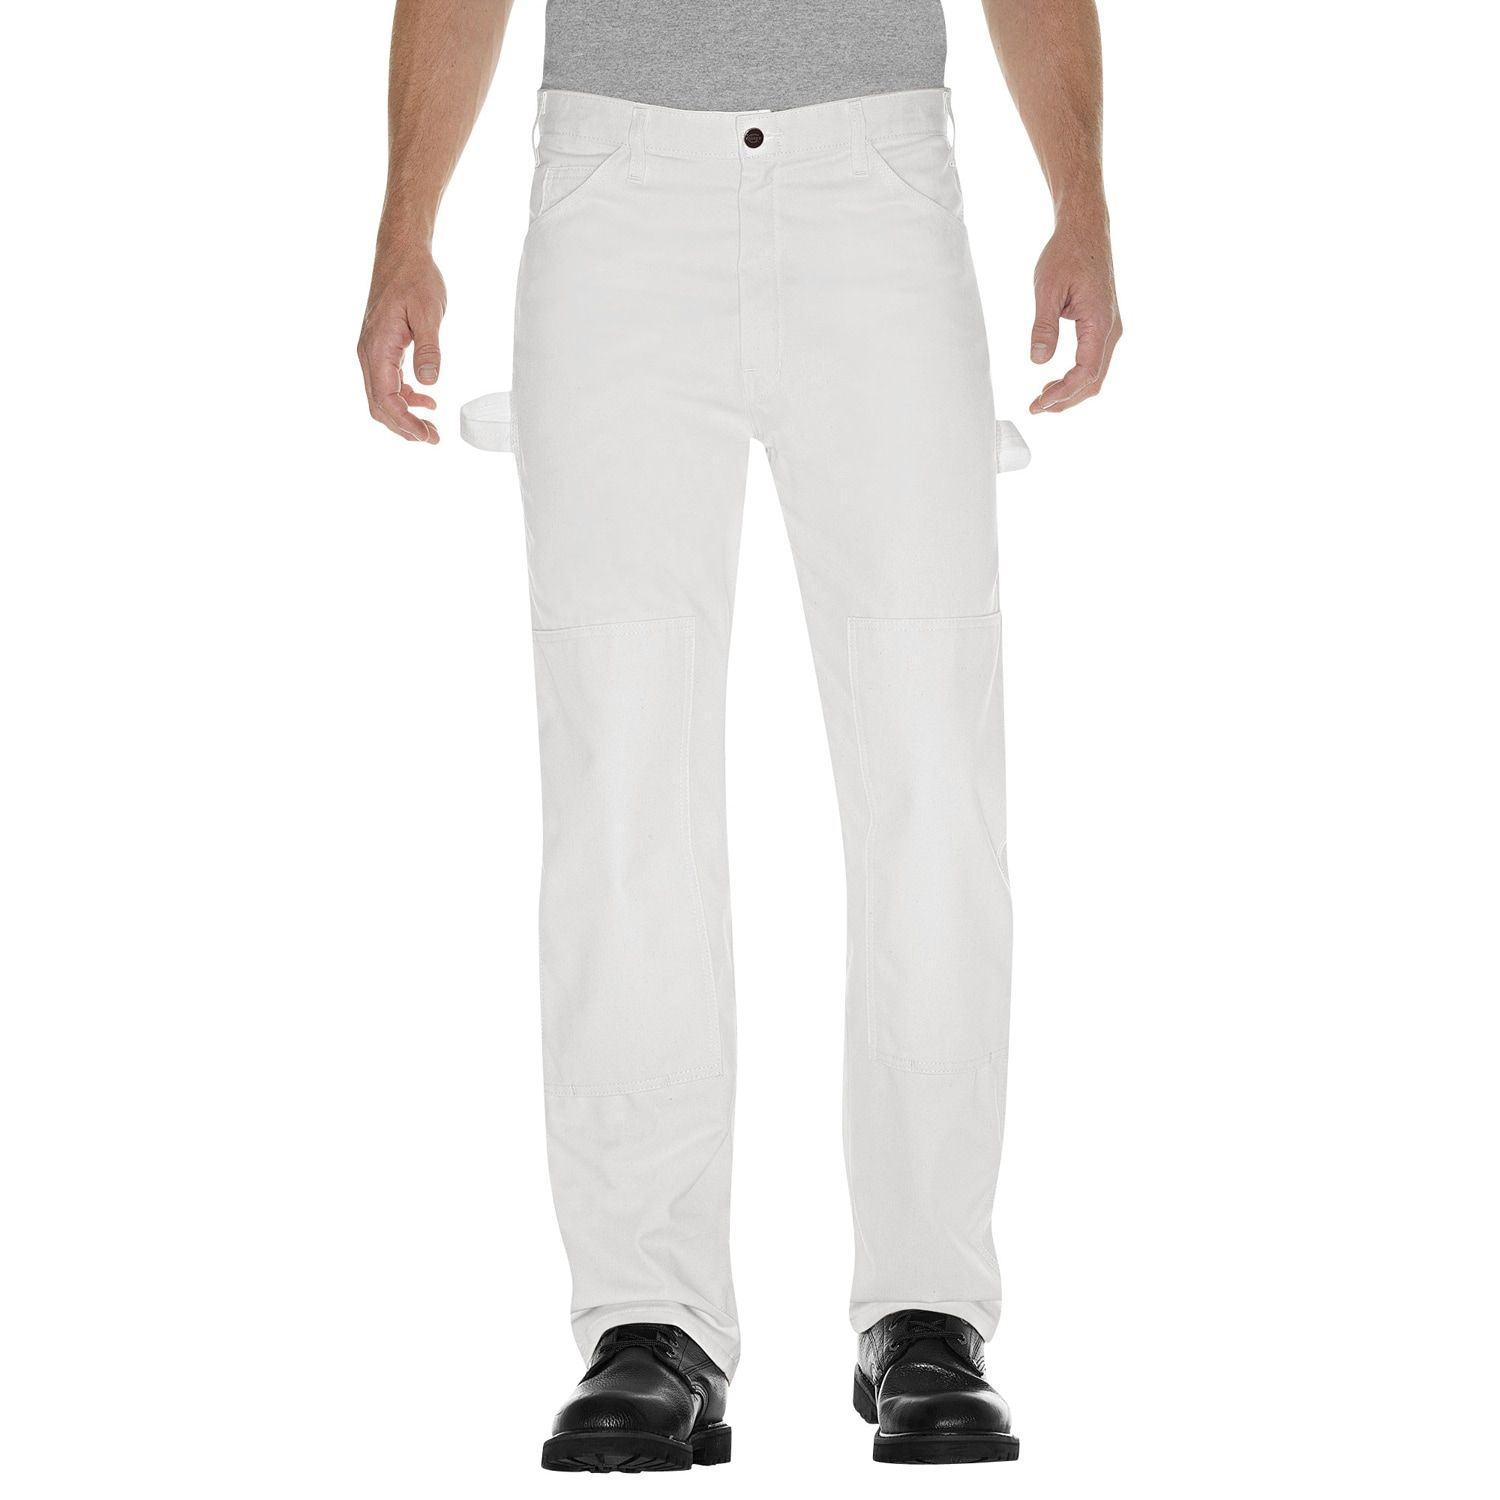 d325e90b Men's Dickies Relaxed-Fit Double-Knee Painter Pants #Relaxed, #Fit, #Men,  #Dickies